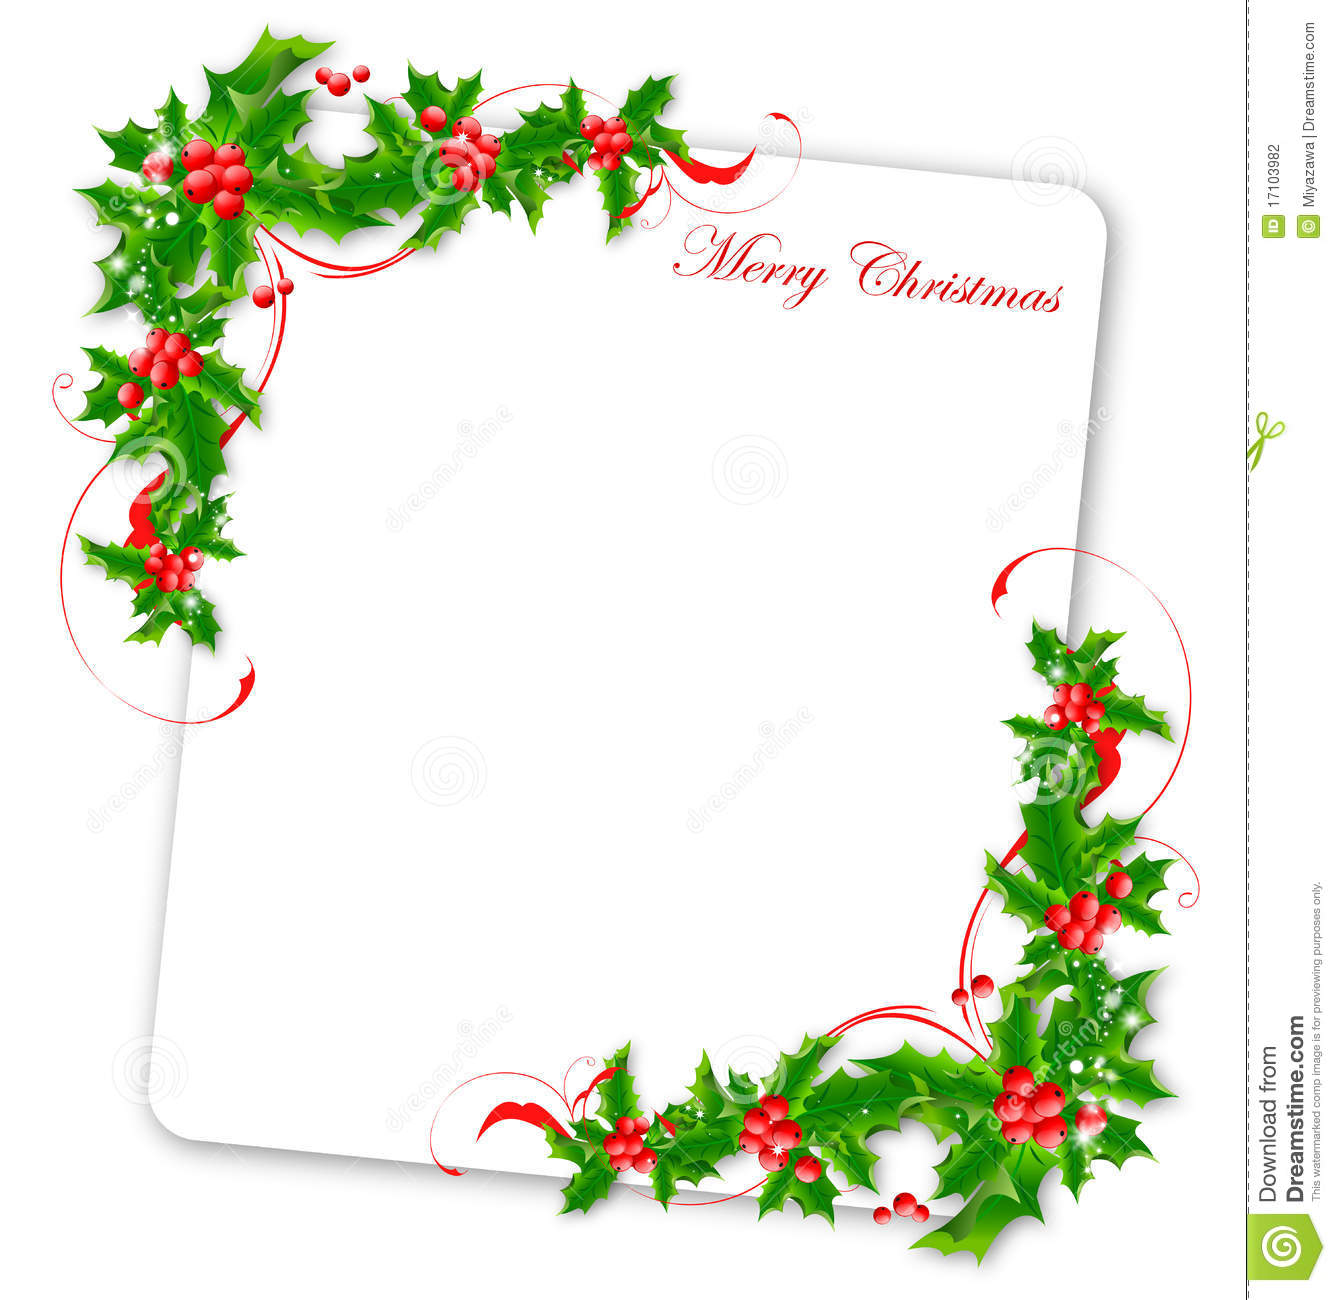 Christmas Card Border.Christmas Card Stock Illustration Illustration Of